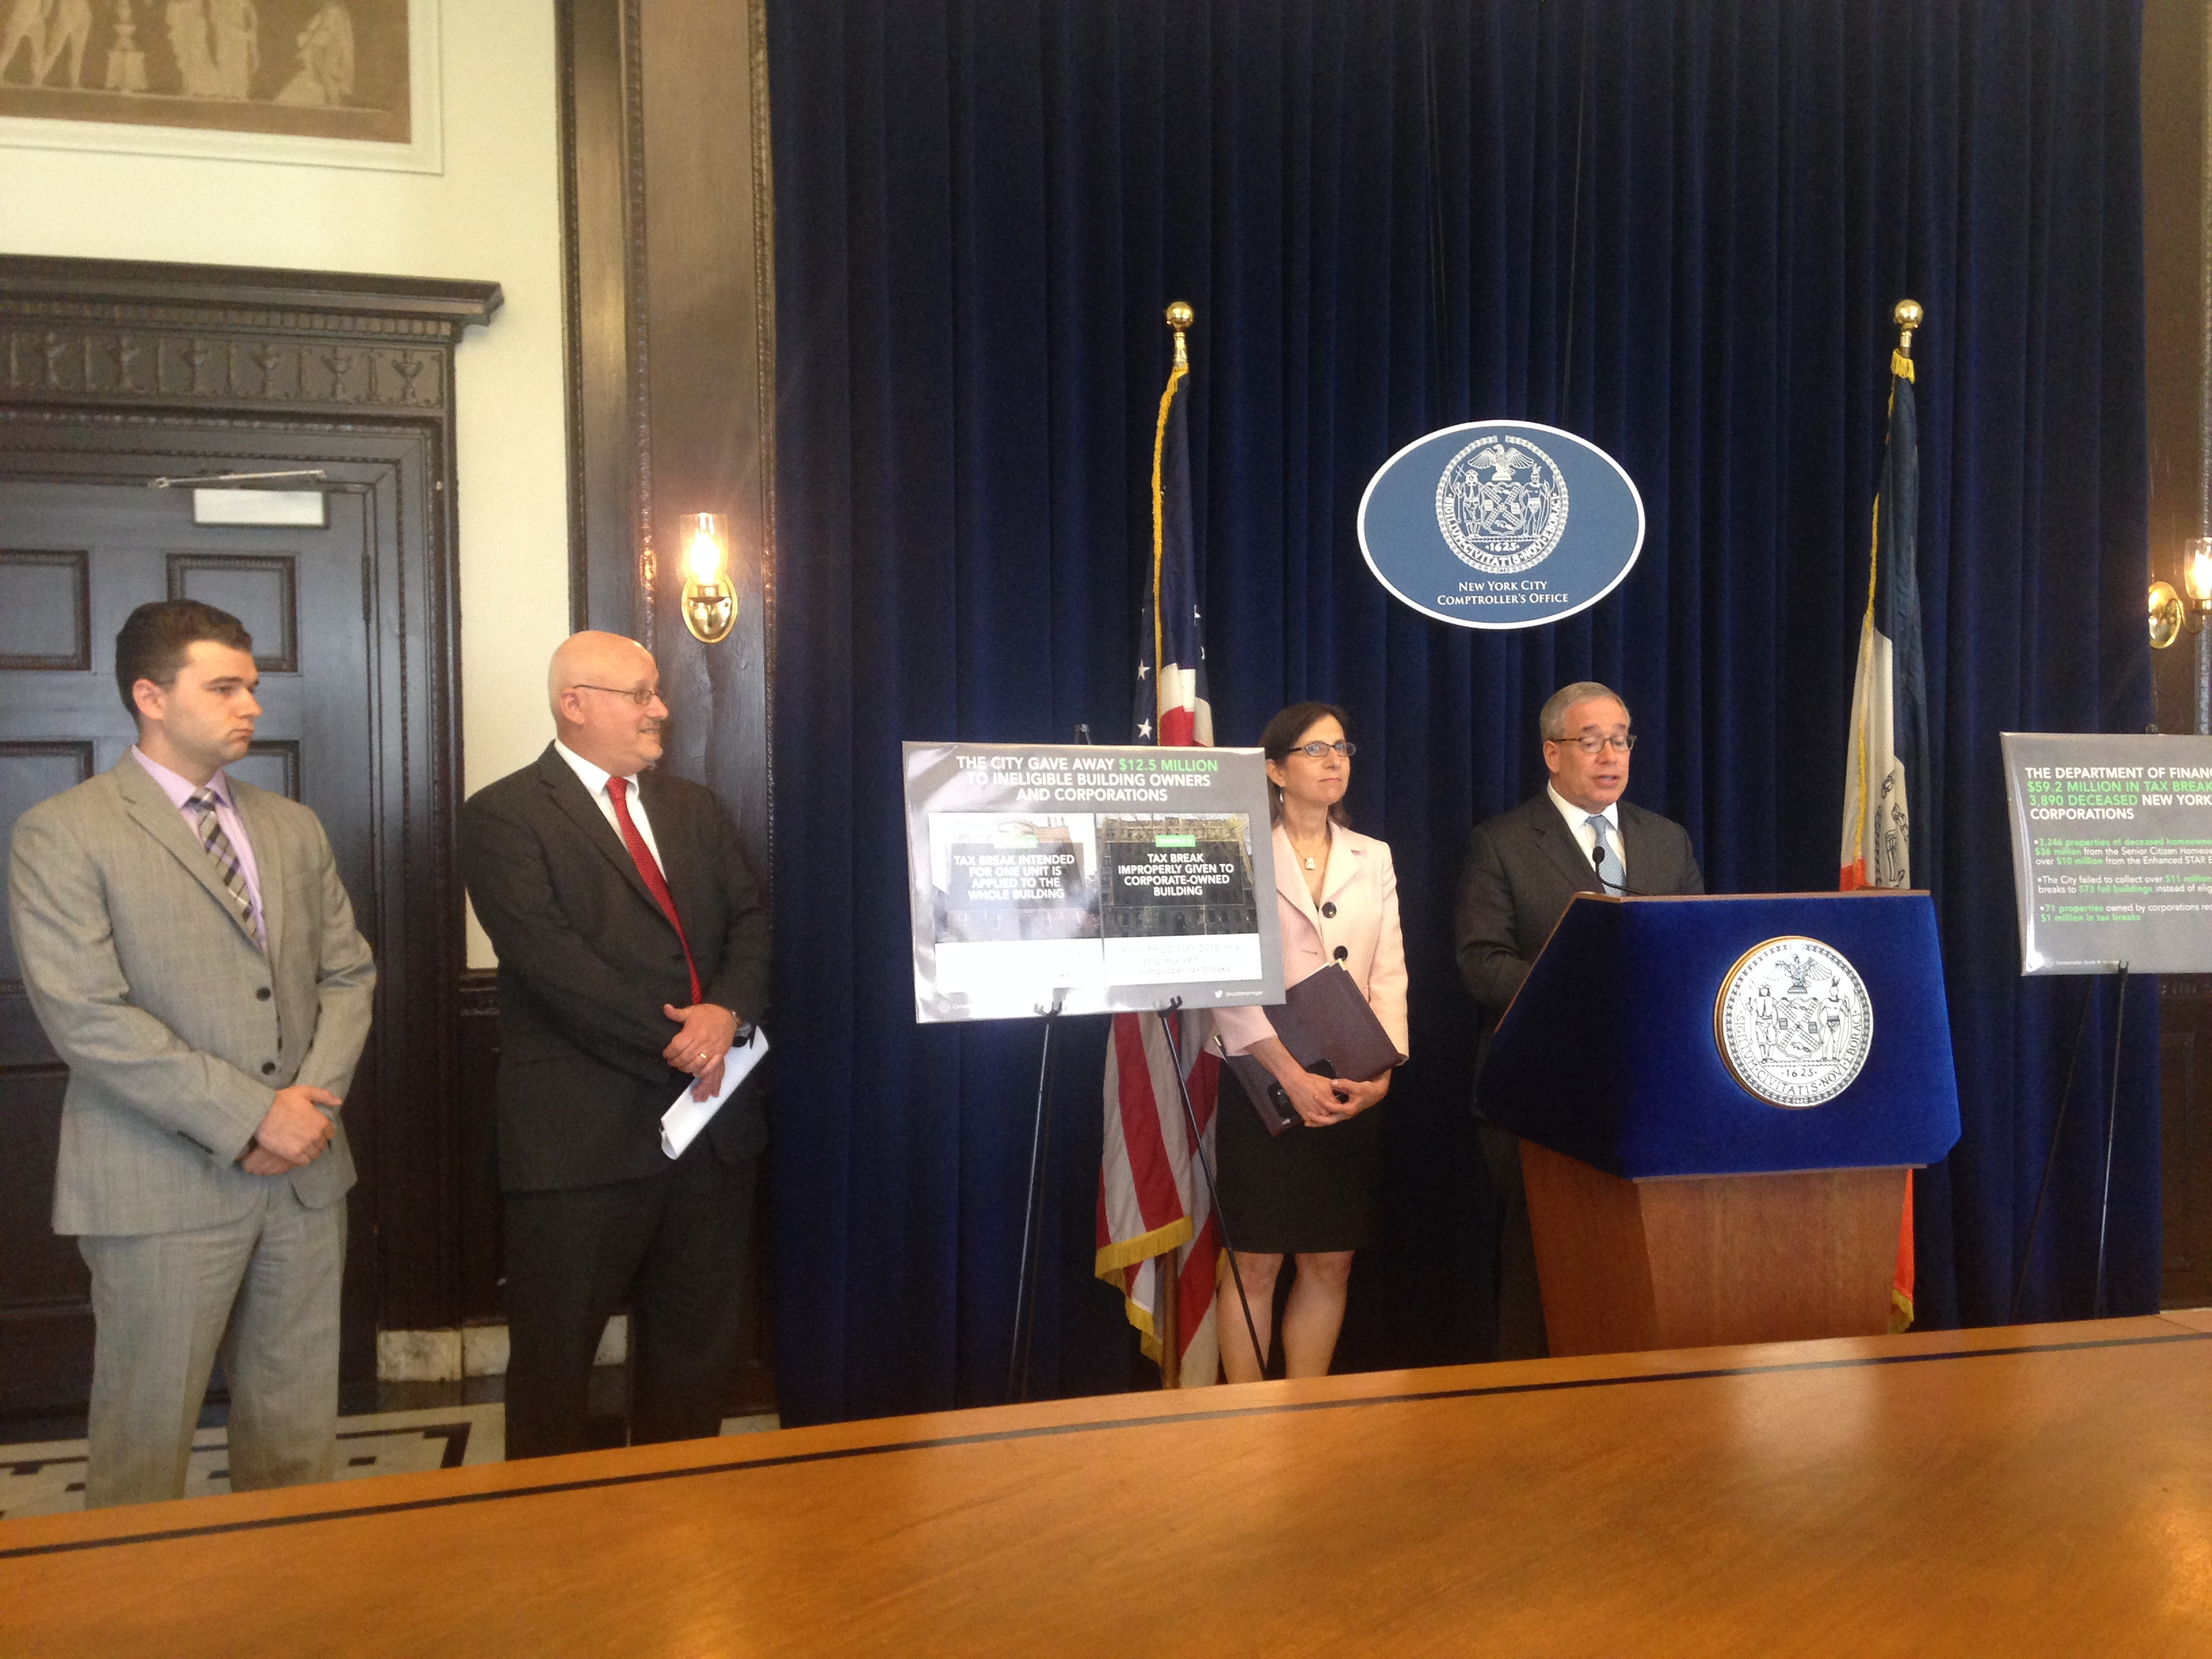 City Comptroller Scott Stringer announced the results of an audit that found that the Finance Department improperly credited tax breaks to dead individuals and corporations.